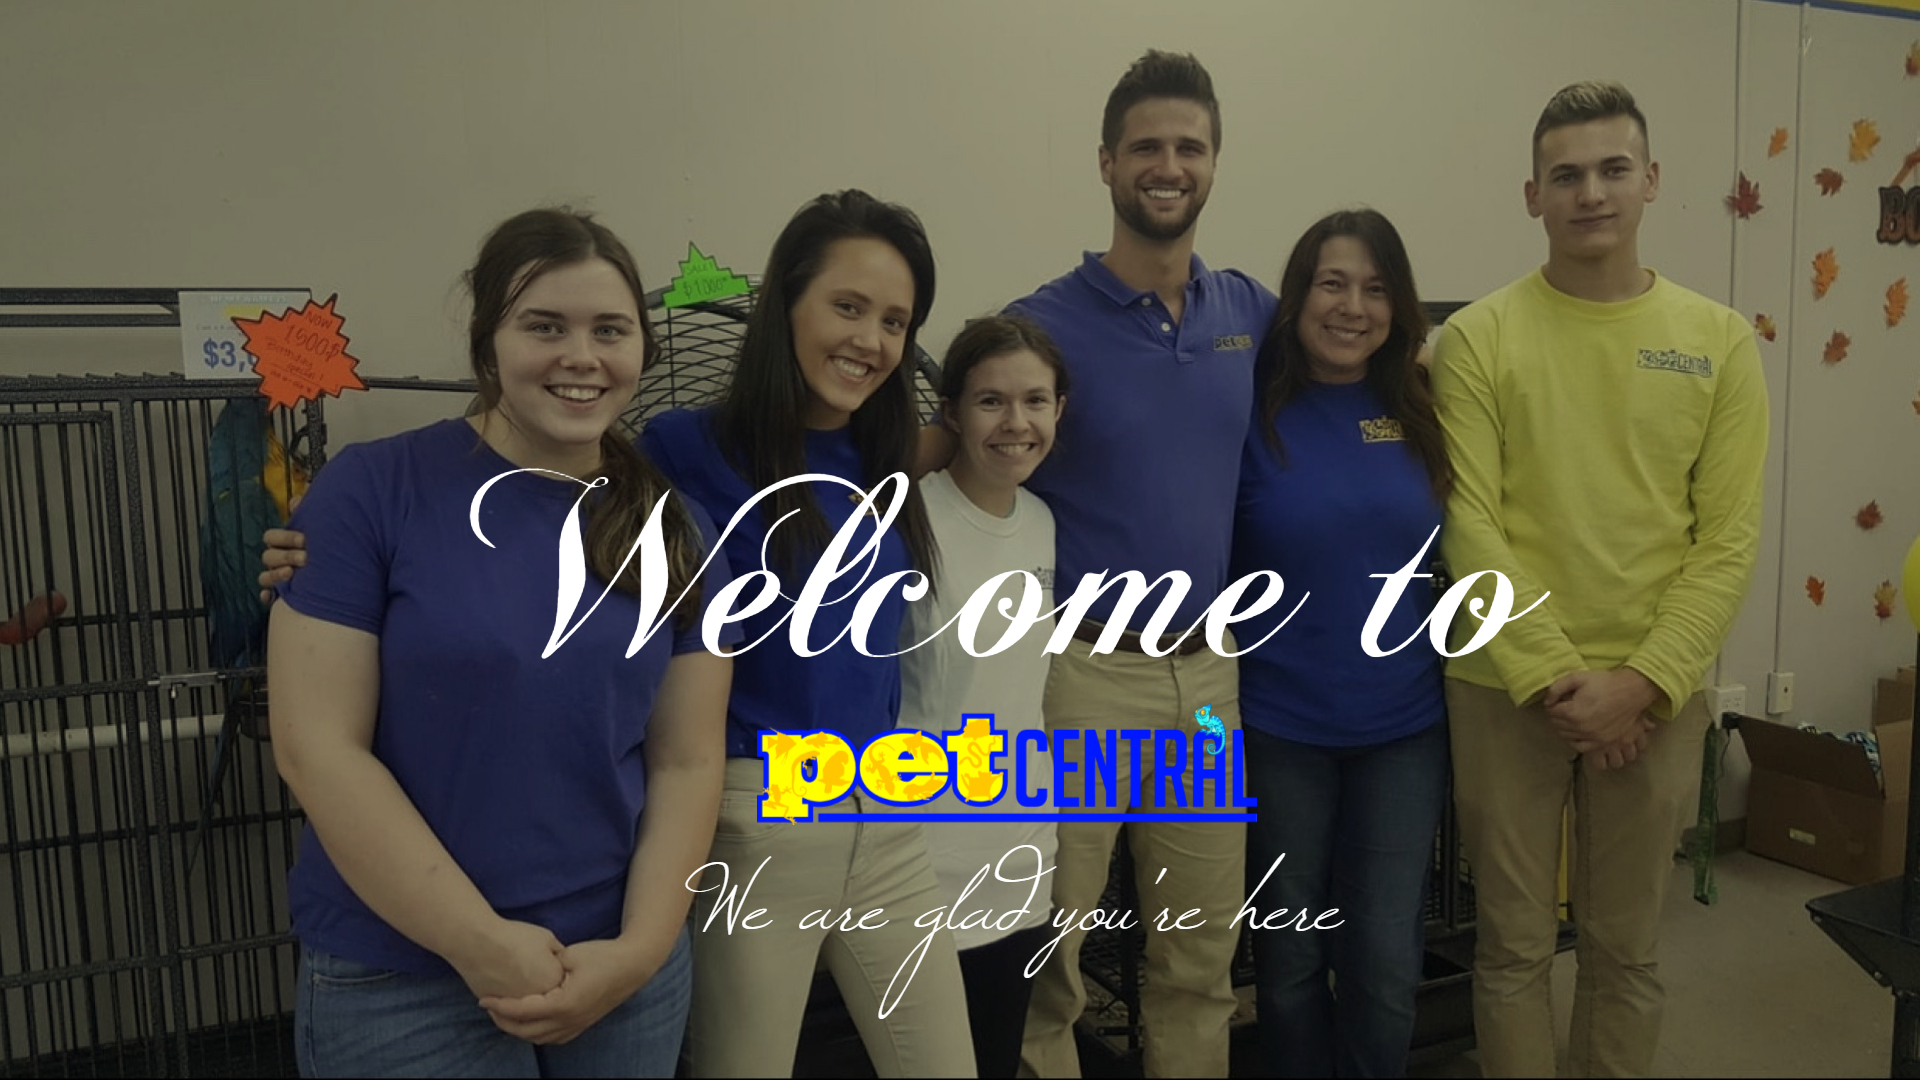 Employees Olivia, Haely, Tina, & Corbin stand alongside owner Austin and customer Summer